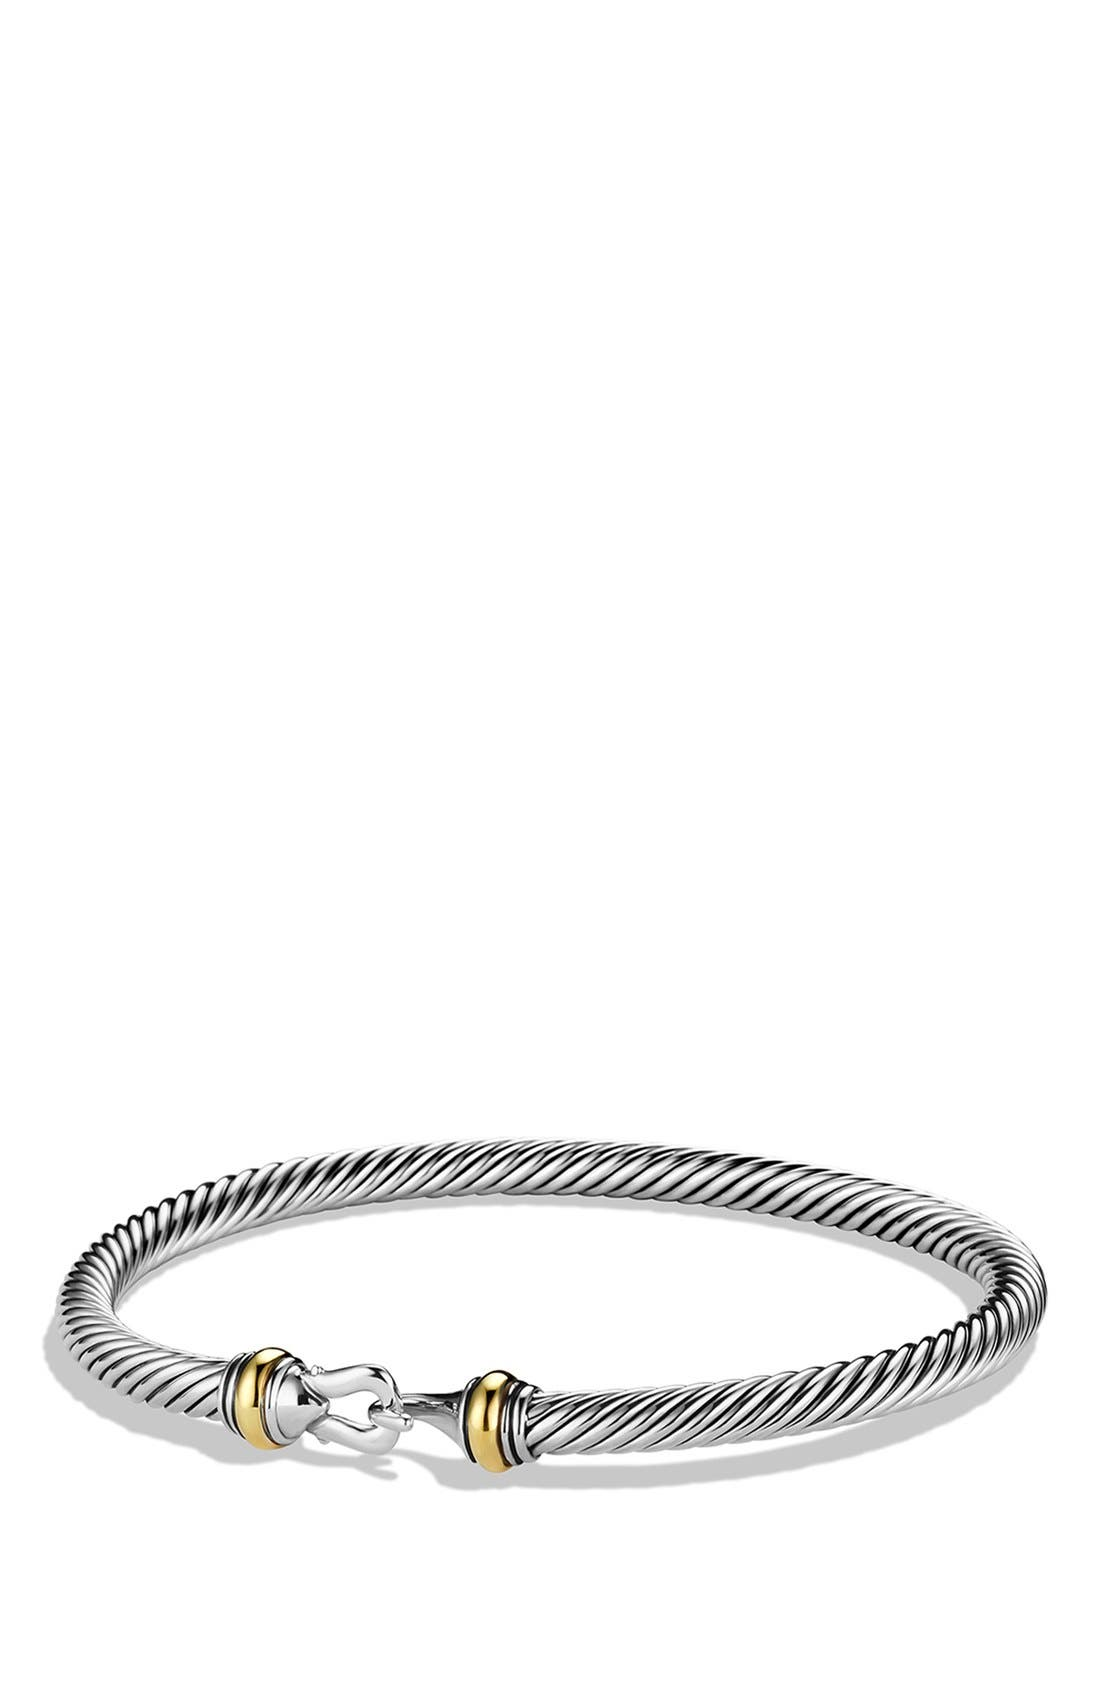 DAVID YURMAN Buckle Cable Bracelet with Gold